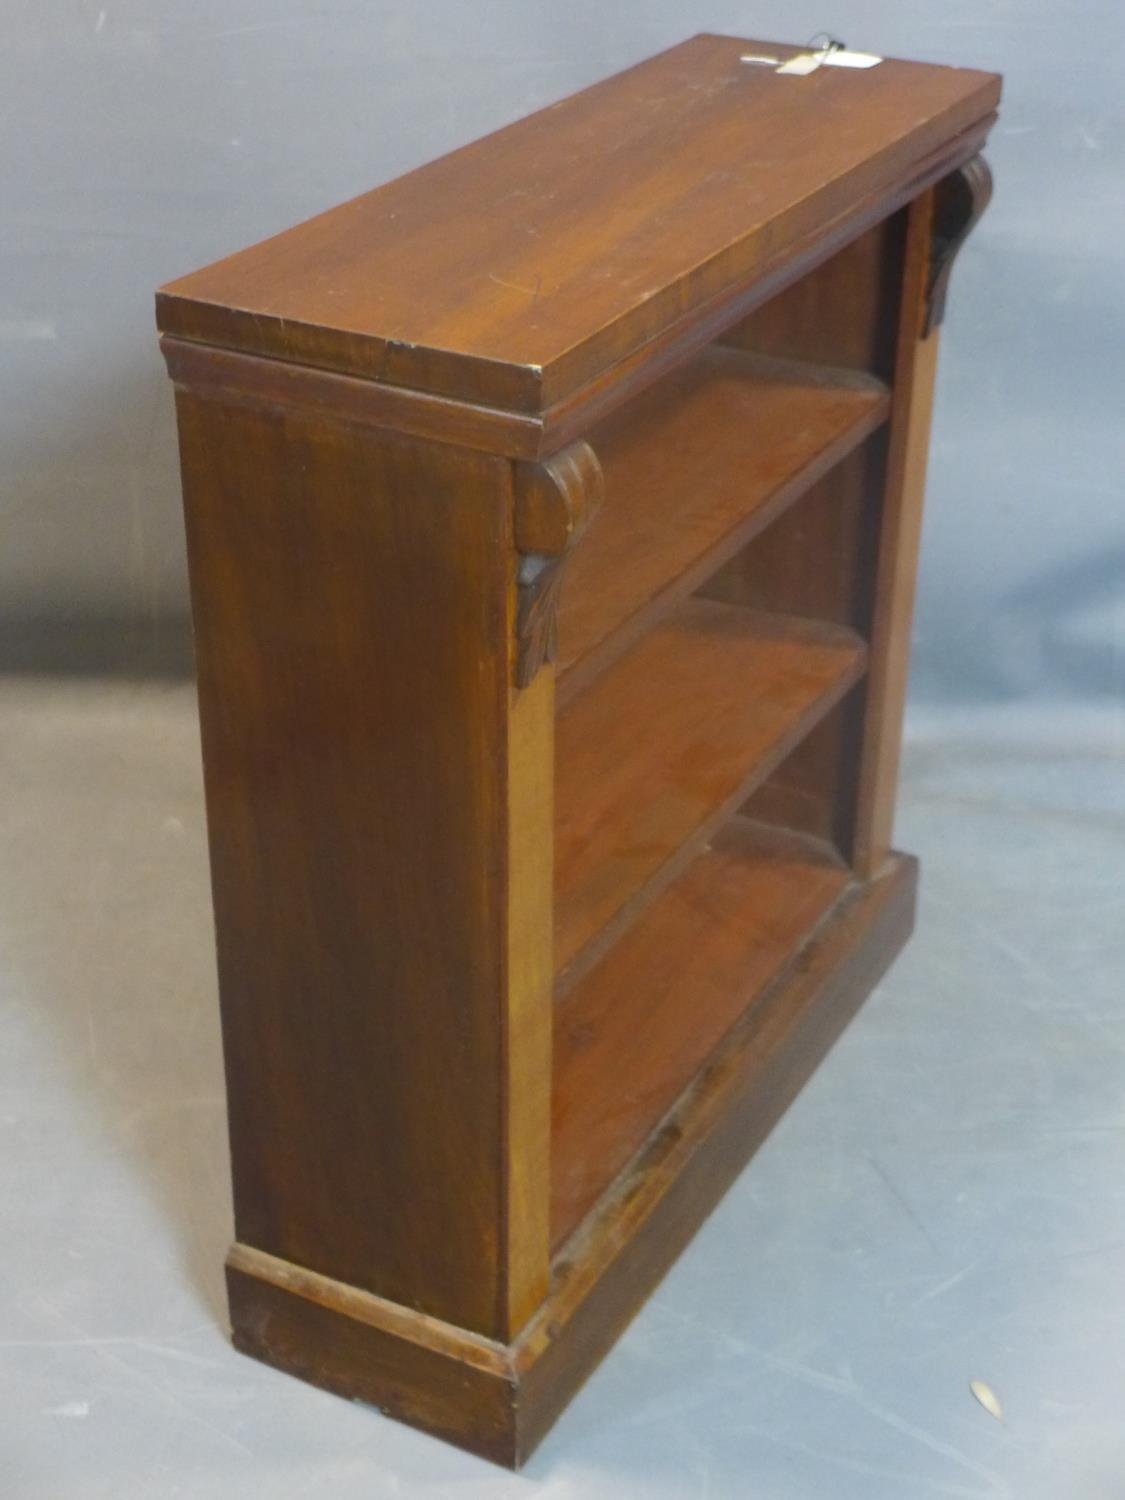 Lot 251 - A 20th century mahogany open bookcase, with two adjustable shelves, on pedestal base, H.88 W.83 D.